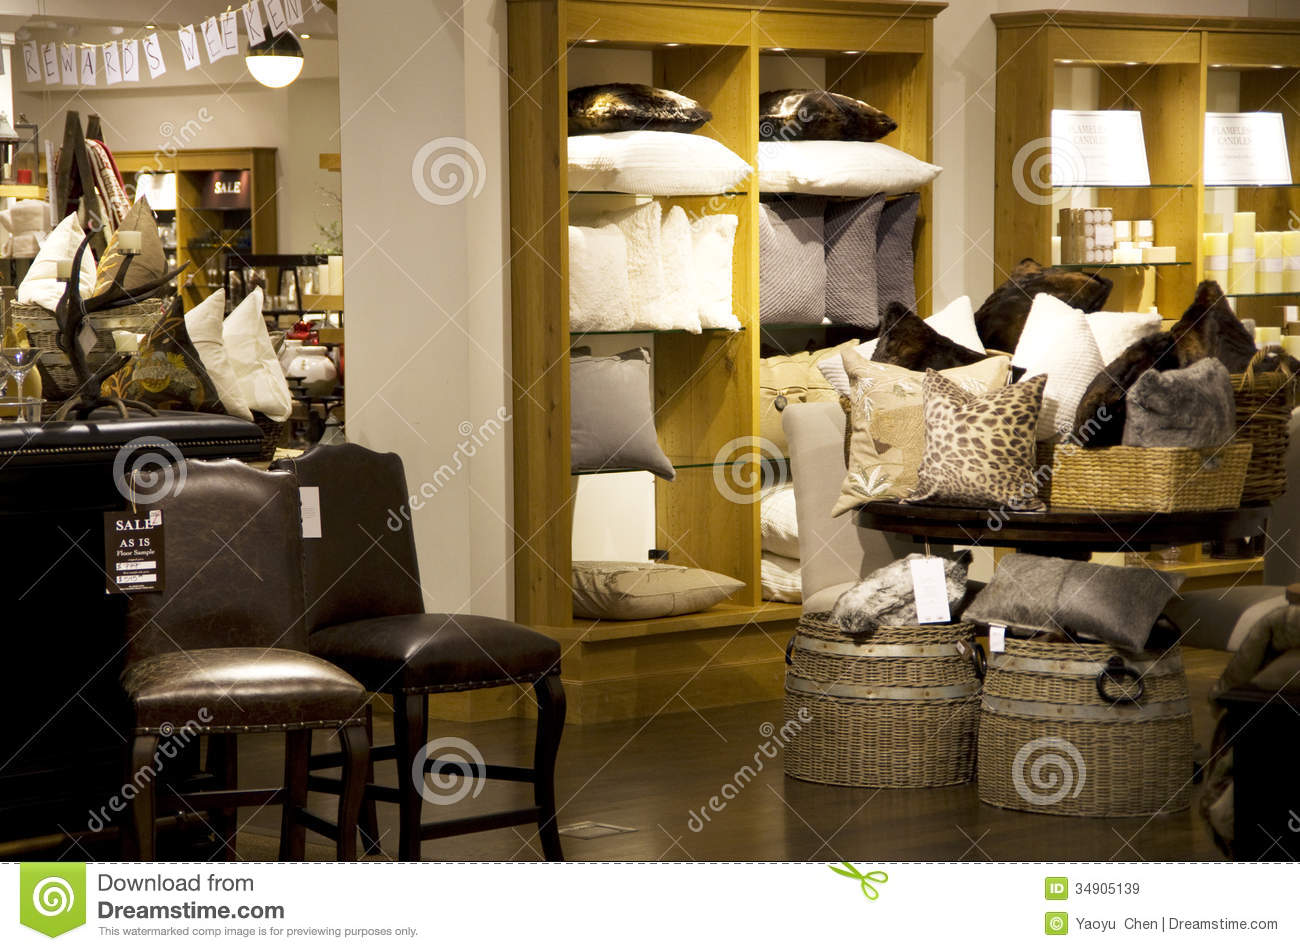 Home Goods Store Stock Image Image Of Lighting Decor 34905139